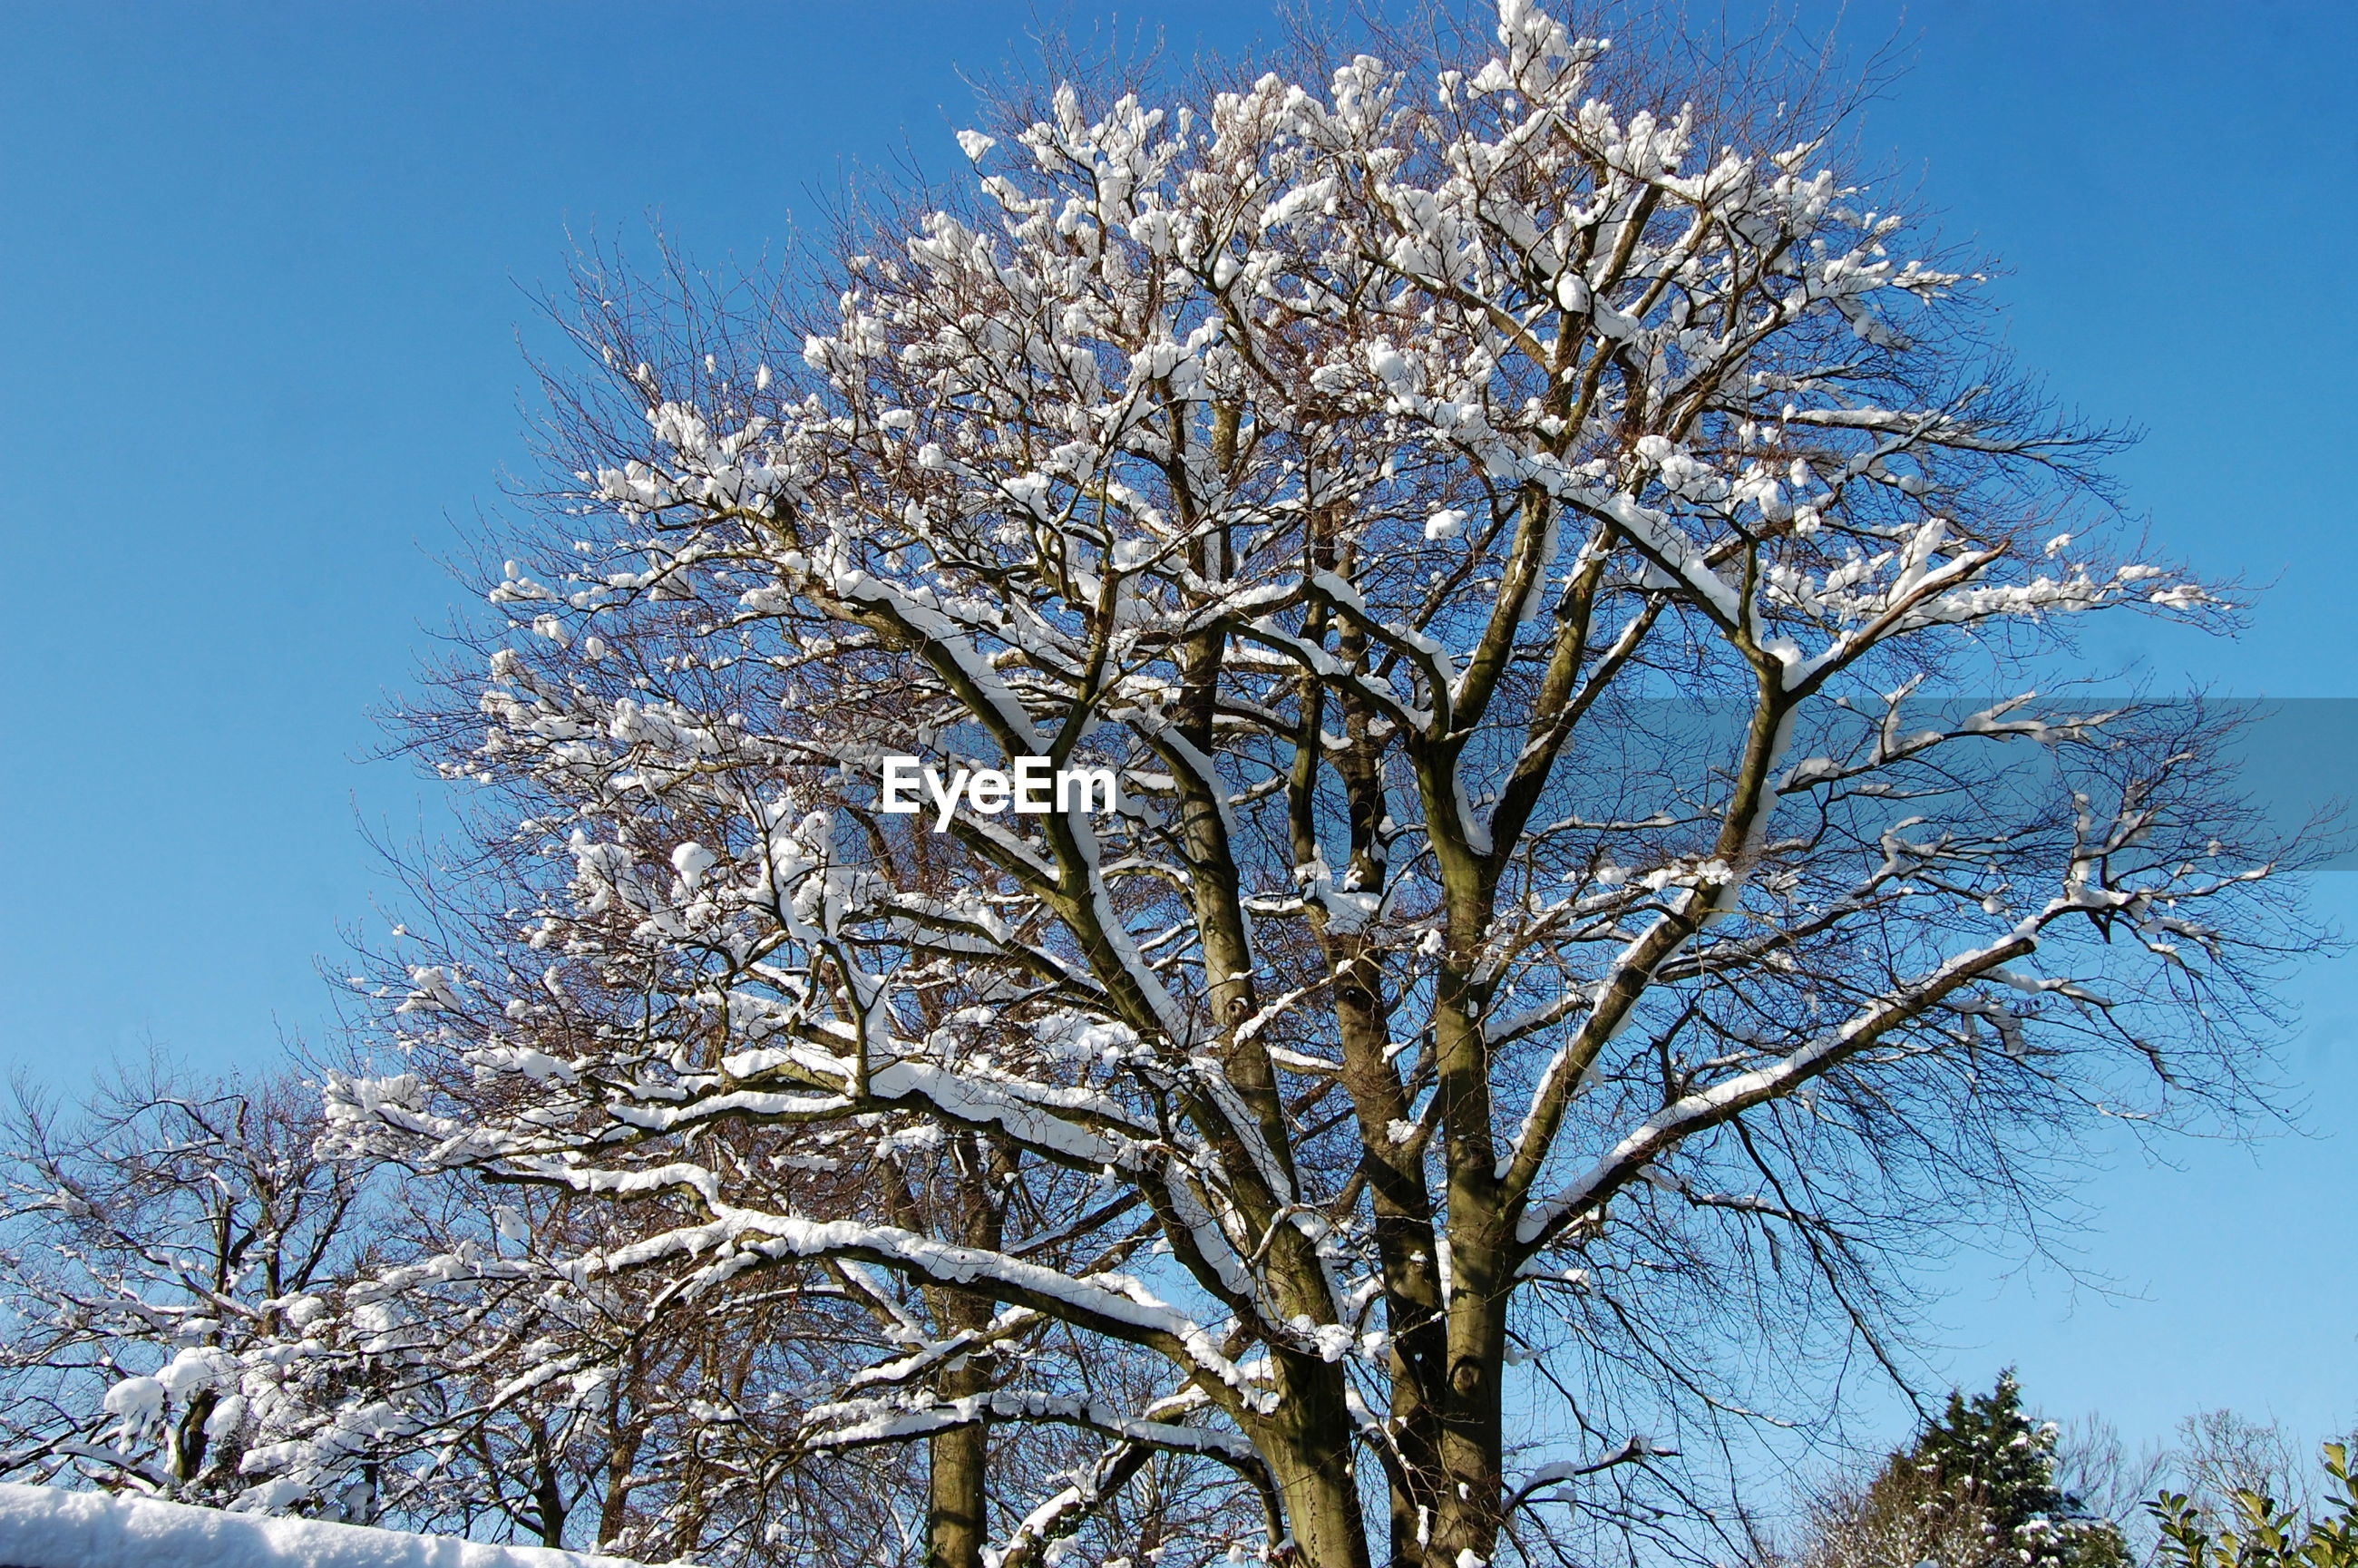 low angle view, blue, clear sky, tree, beauty in nature, branch, scenics, nature, growth, bare tree, white, tranquility, day, tranquil scene, tree trunk, sky, outdoors, high section, solitude, non-urban scene, majestic, springtime, remote, treetop, no people, tall, in bloom